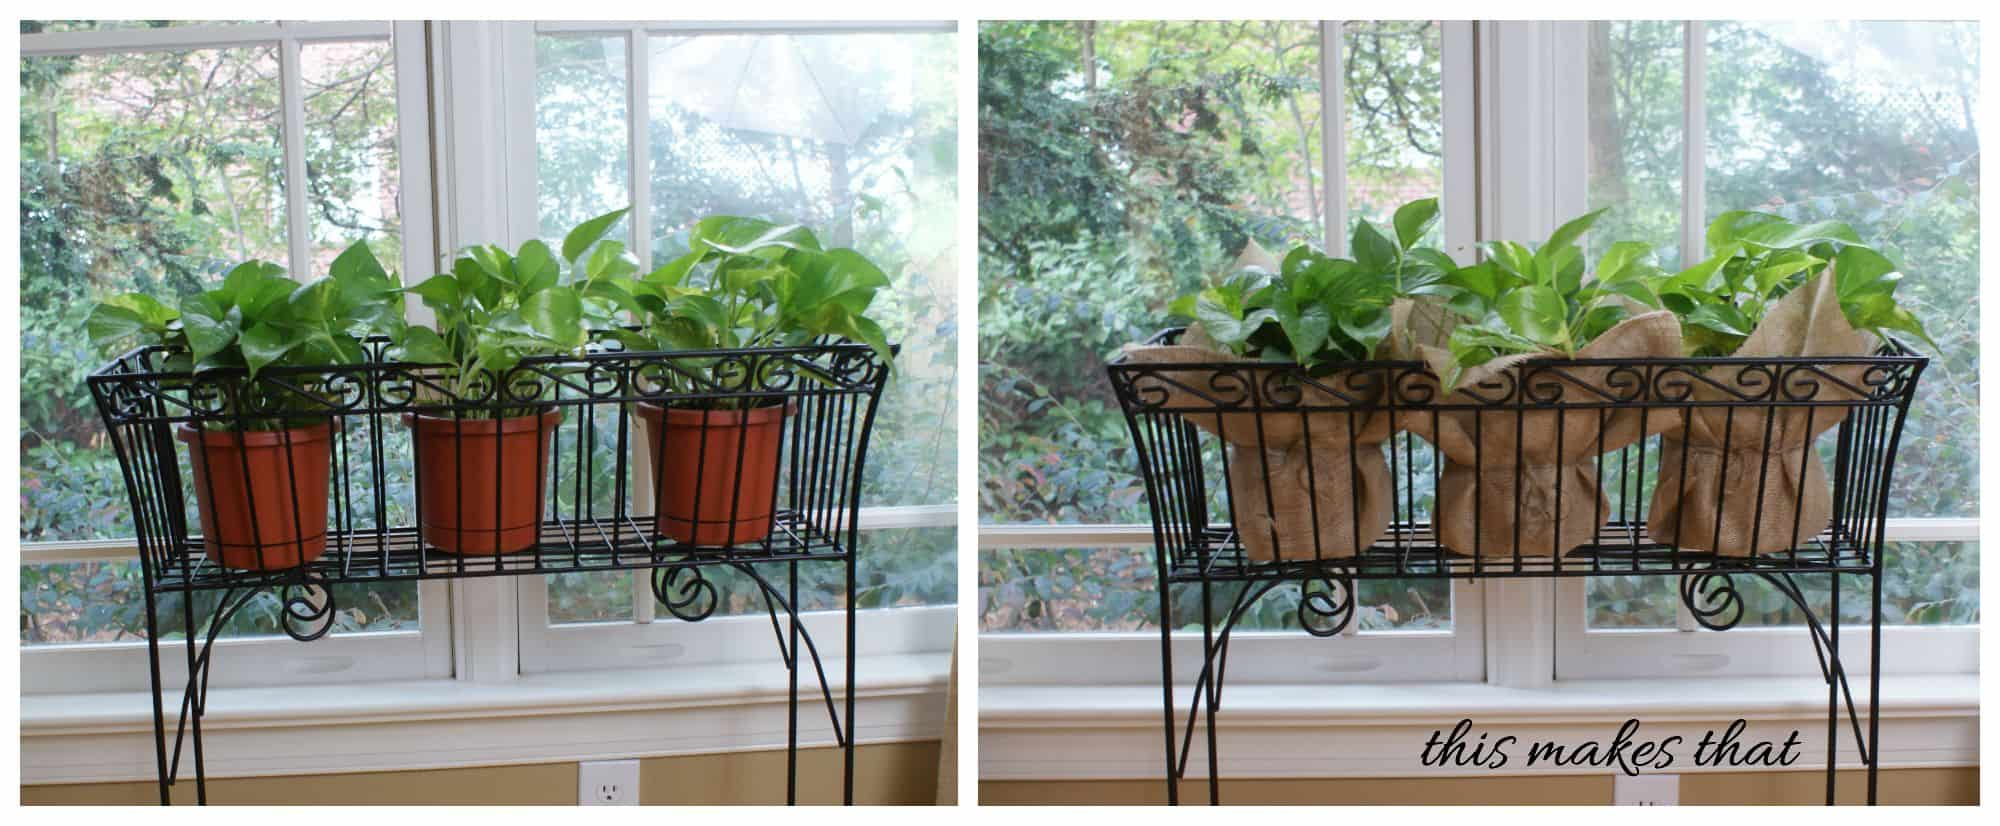 pothos before and after